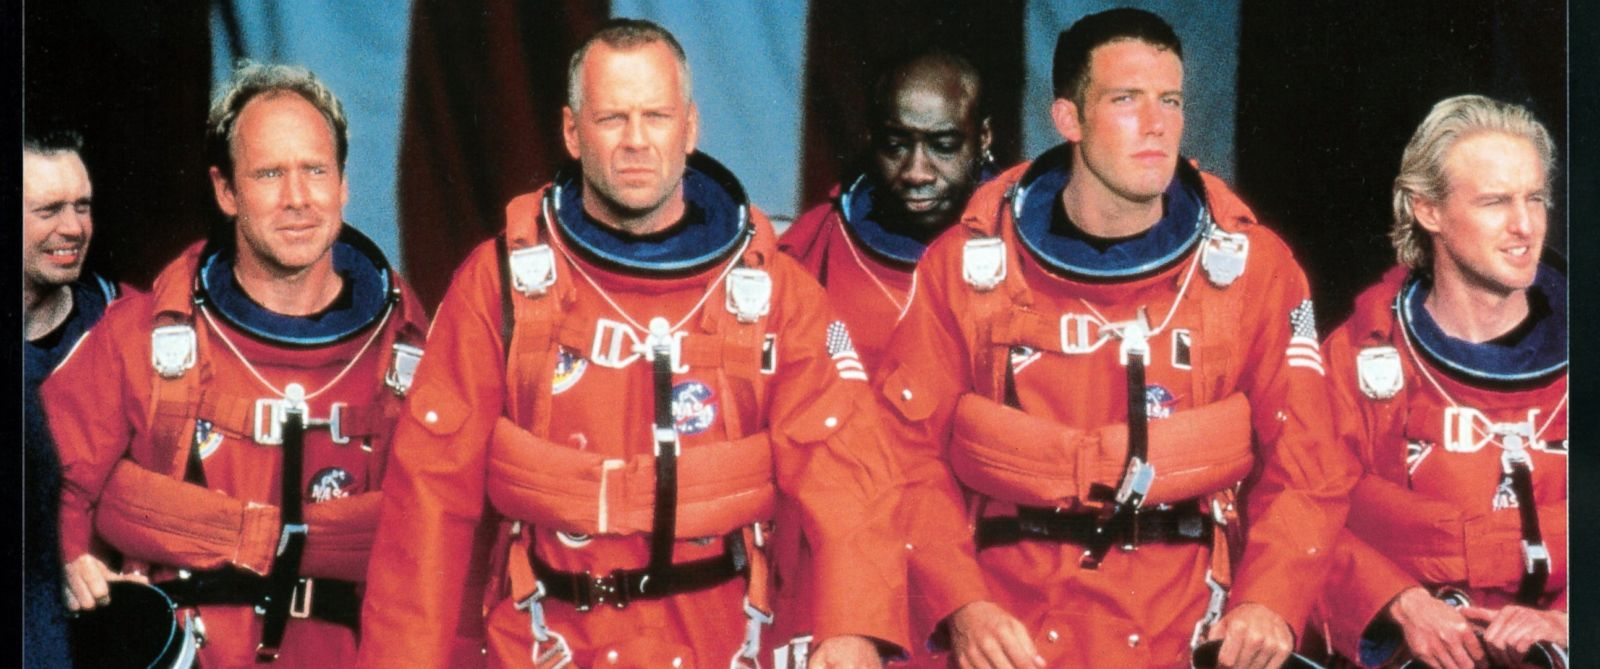 "PHOTO: Steve Buscemi, Will Patton, Bruce Willis, Michael Clarke Duncan, Ben Affleck, and Owen Wilson in a scene from the film ""Armageddon."""